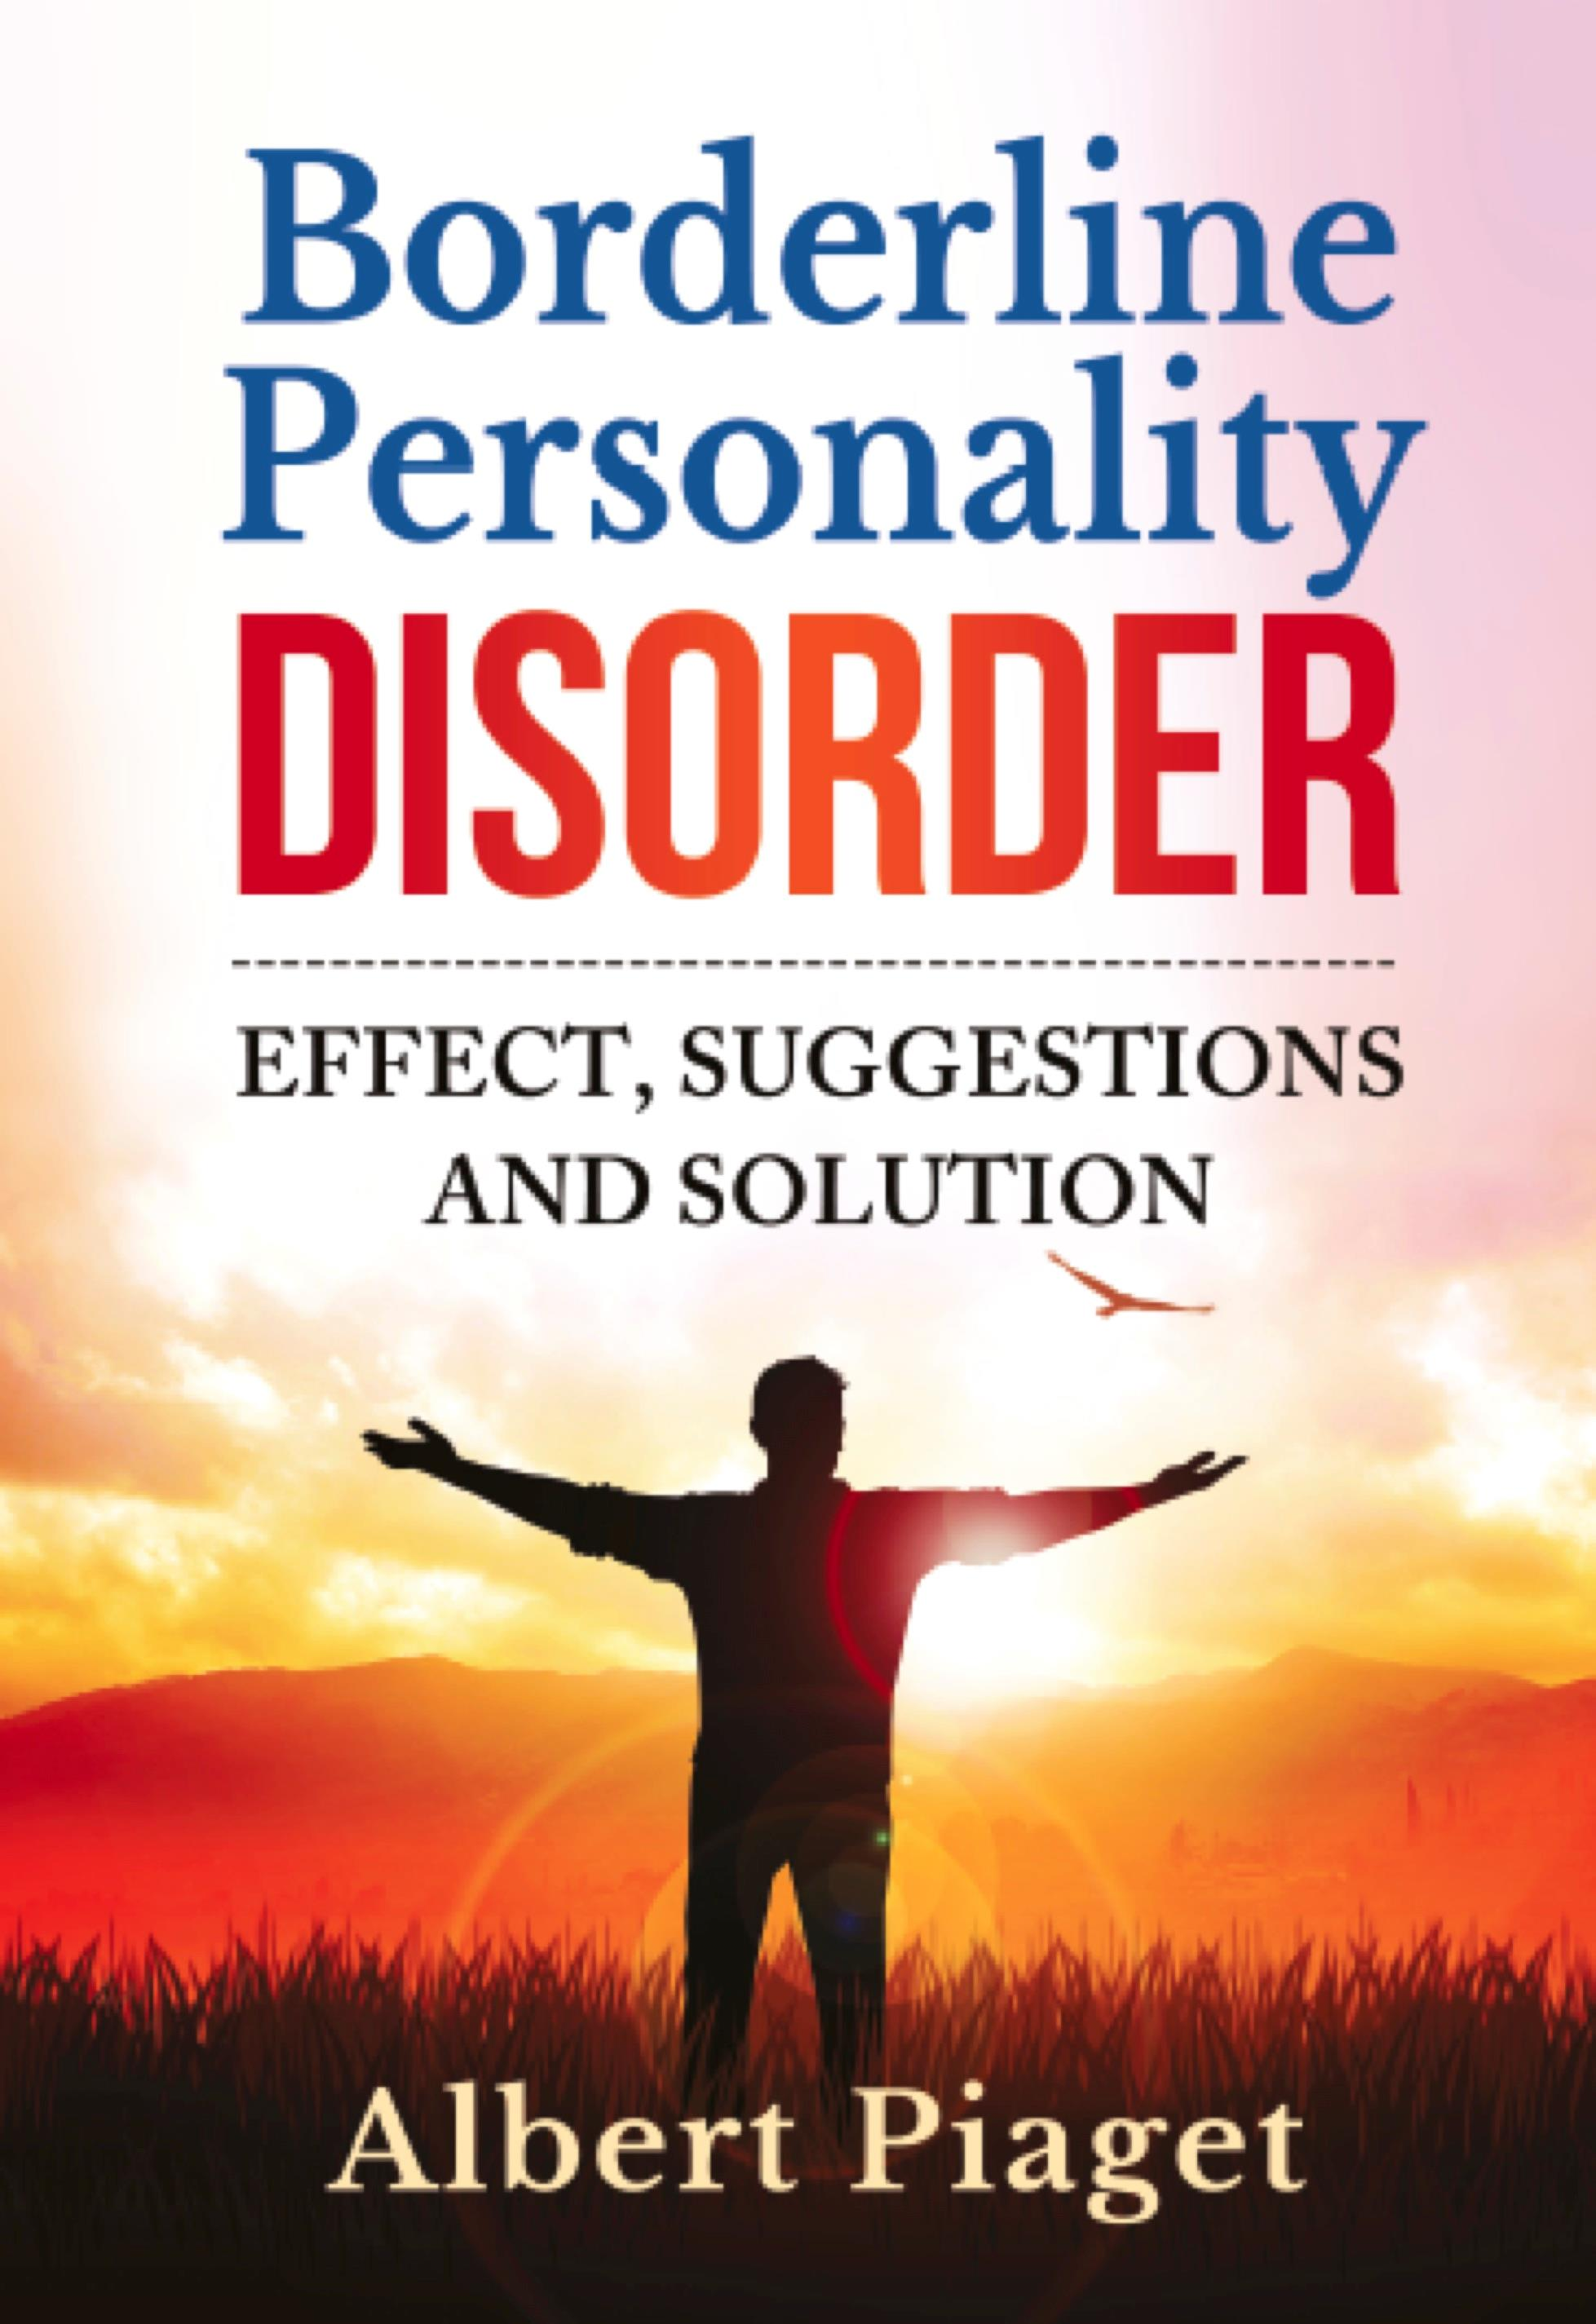 Borderline Personality Disorder. Effect, suggestions and solution